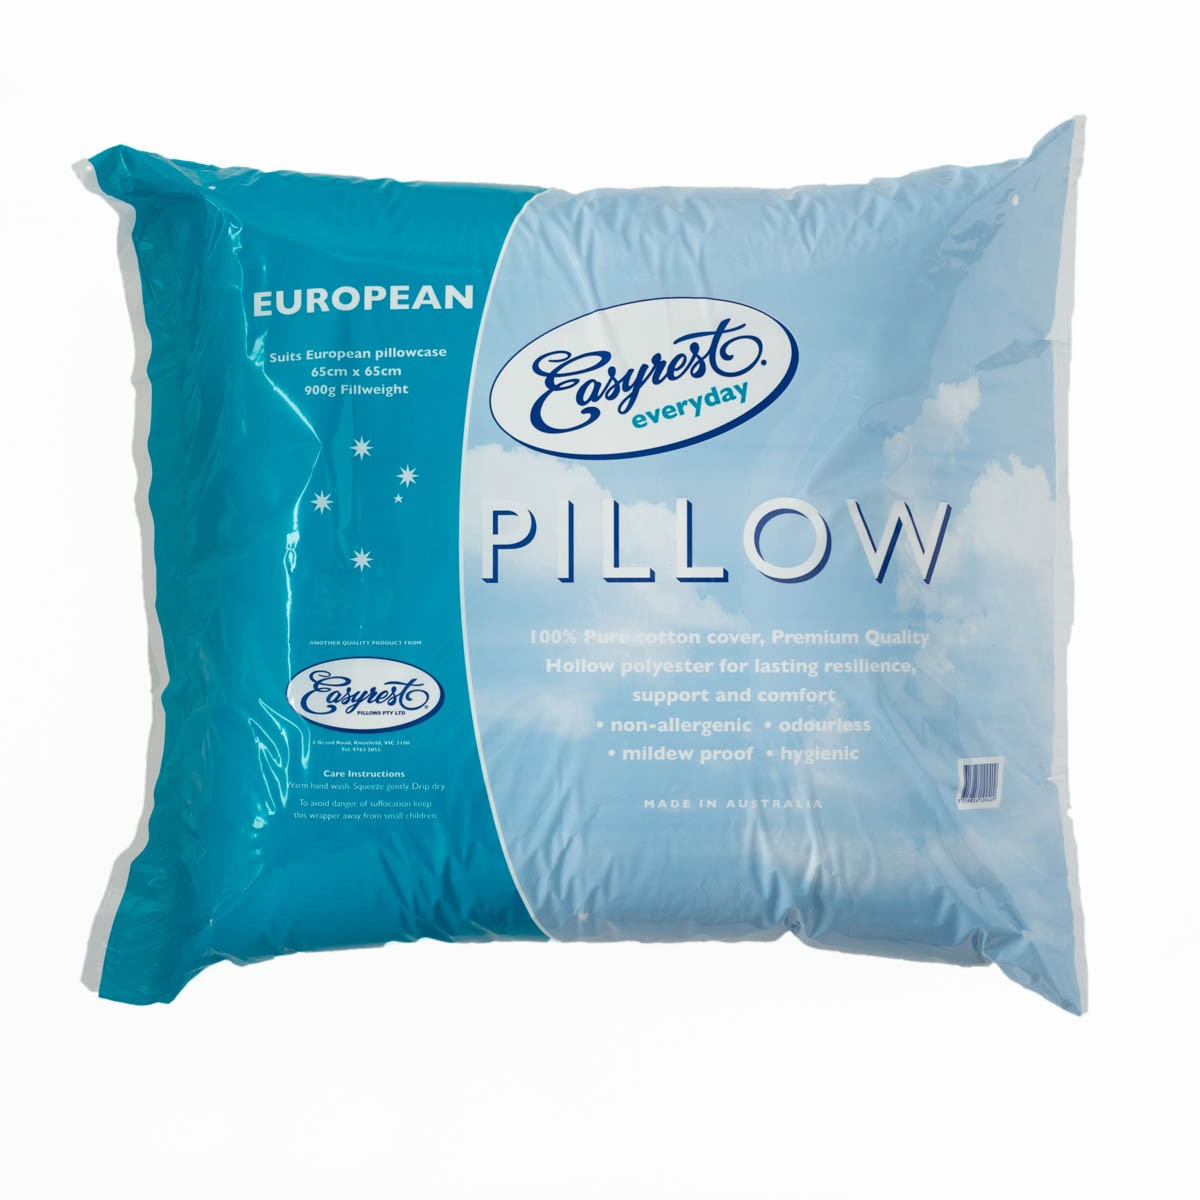 Easyrest European Pillow